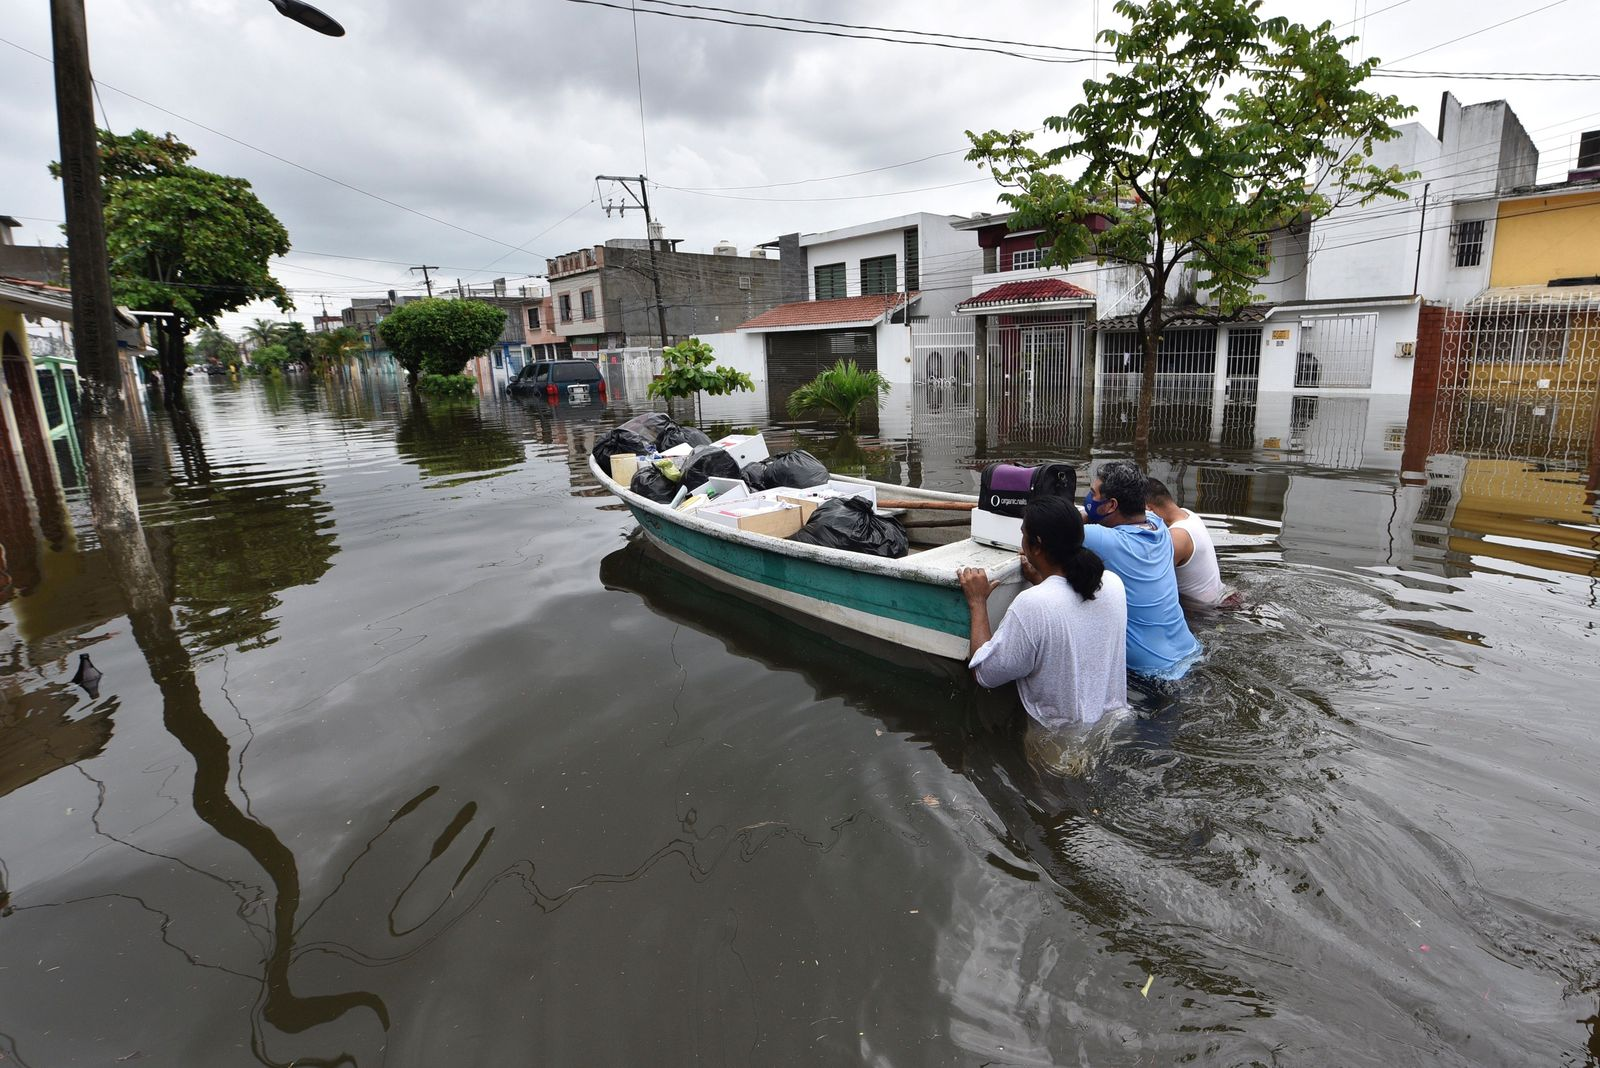 Tropical Storm Gamma causes heavy flooding in Southeast Mexico, Ncajuca - 03 Oct 2020